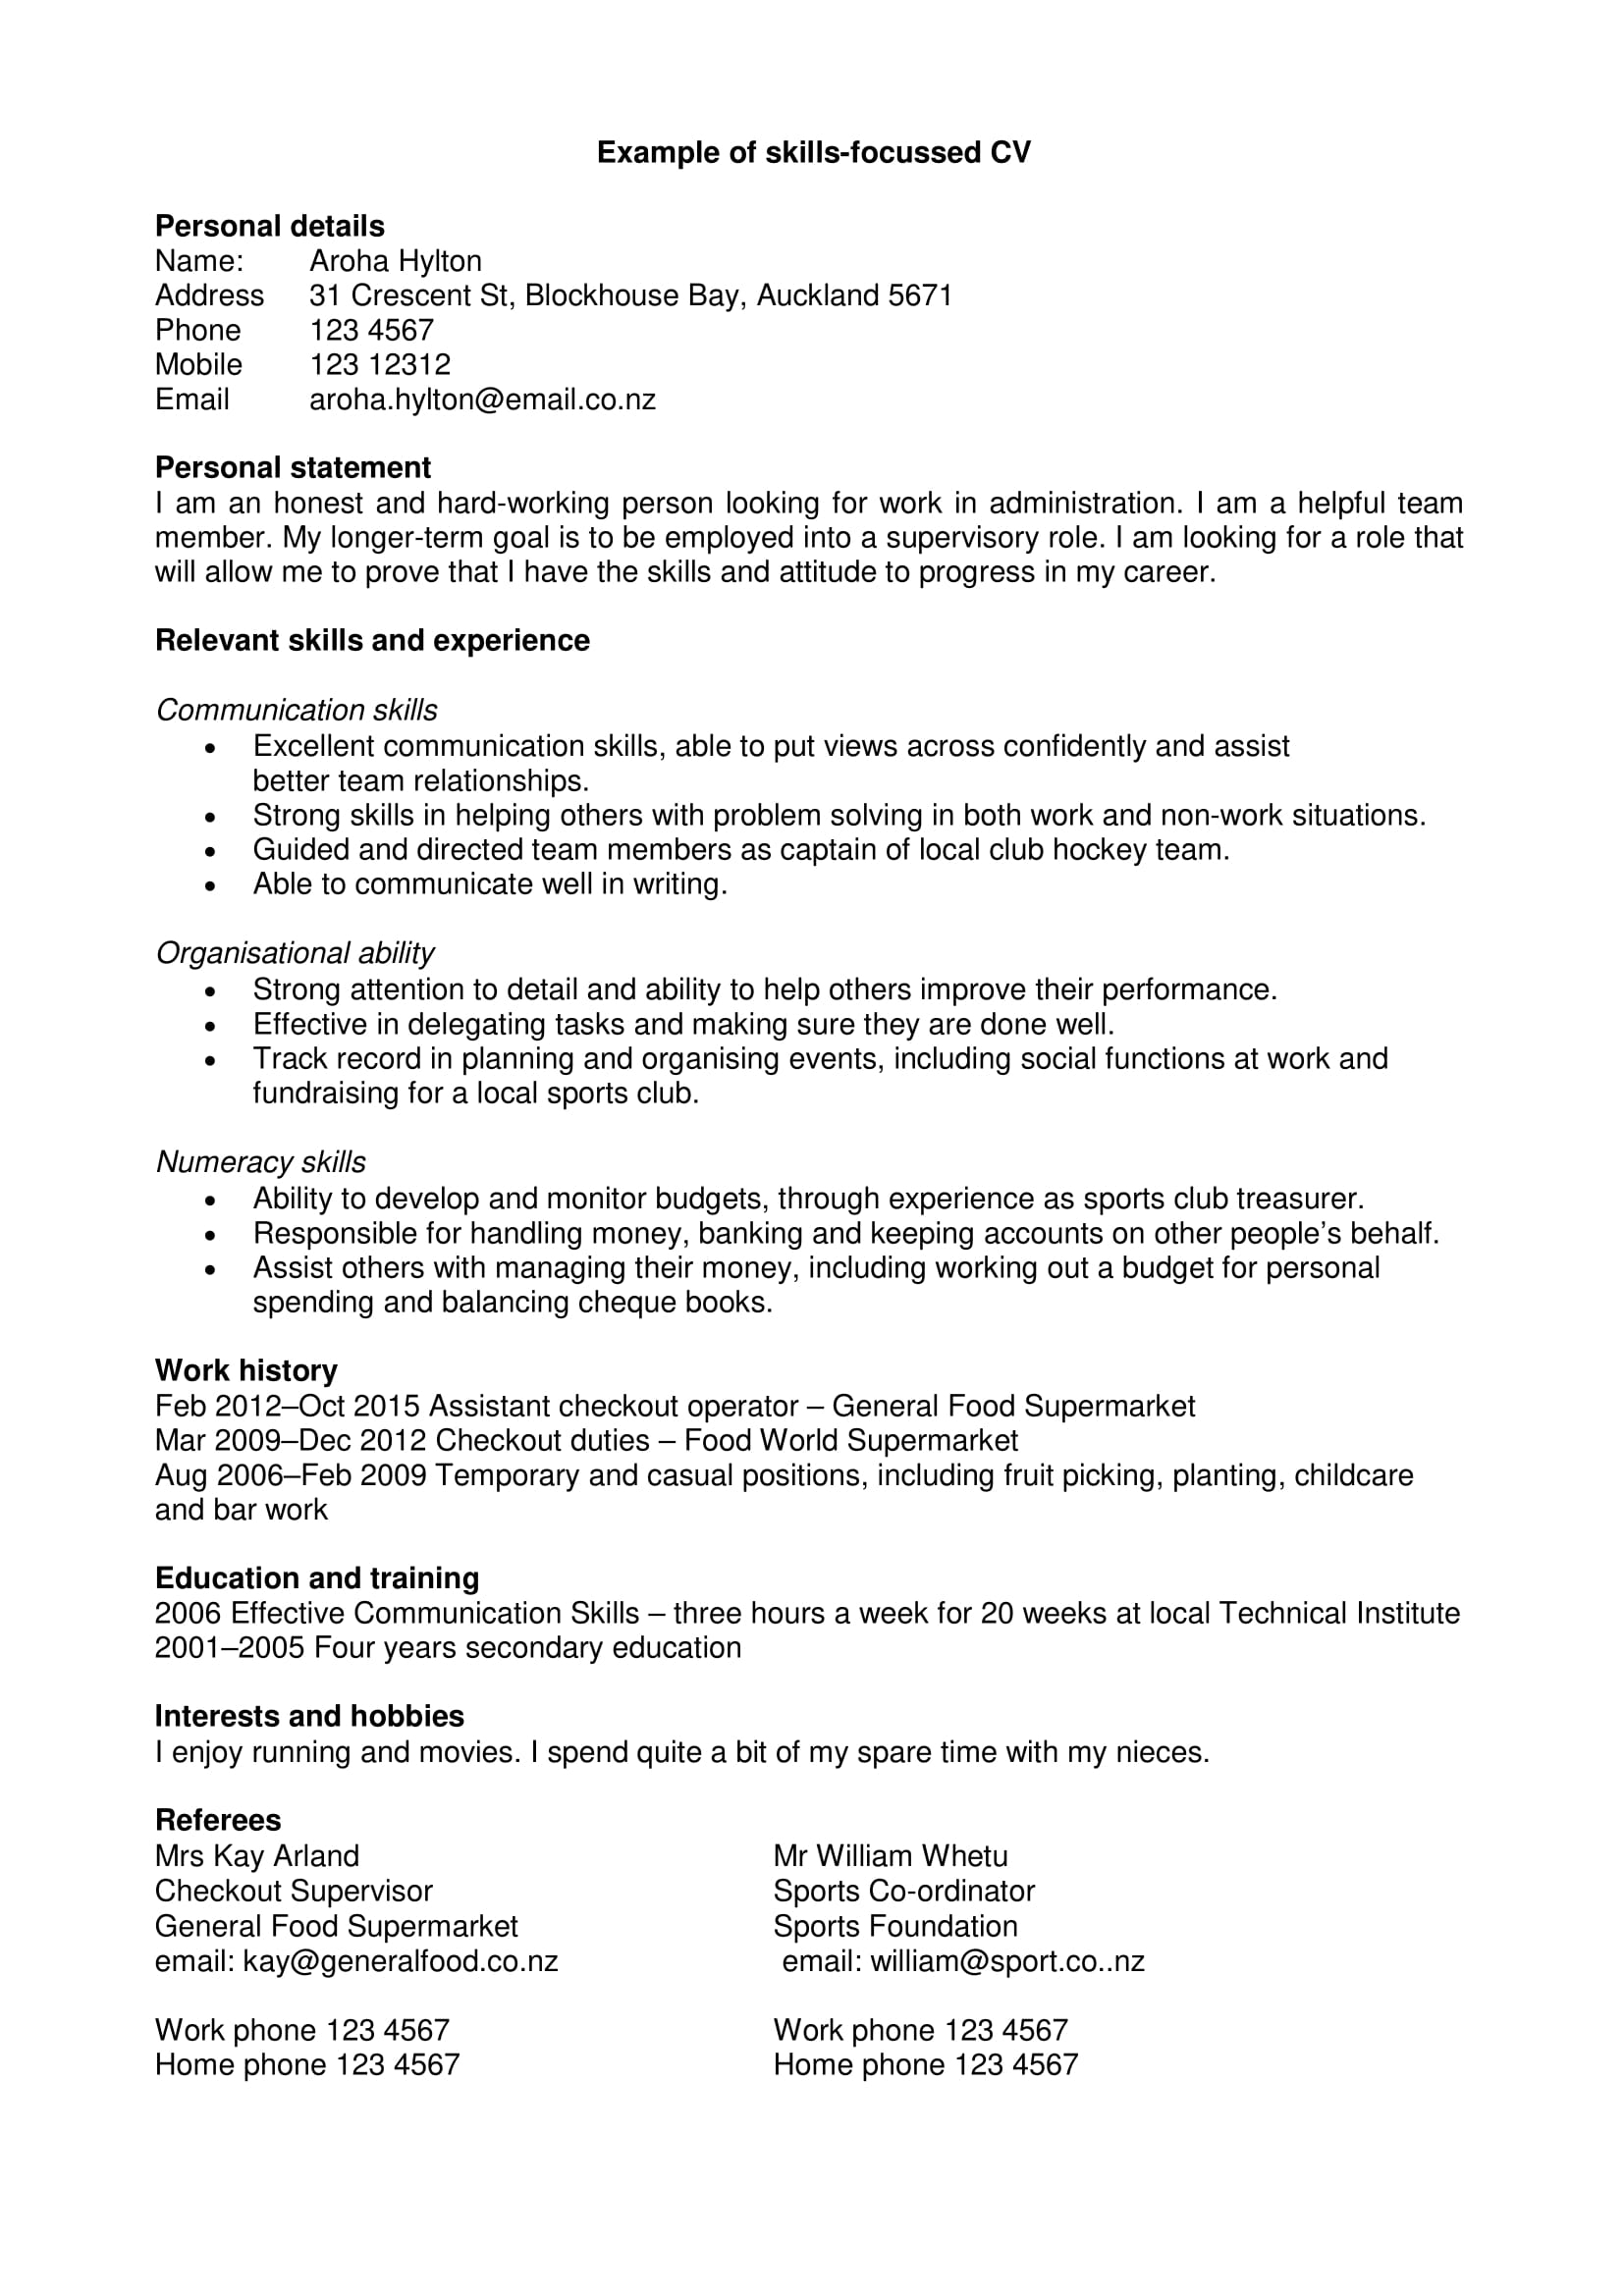 personal summary examples pdf resume profile statement skills focused cv with example Resume Resume Profile Statement Examples